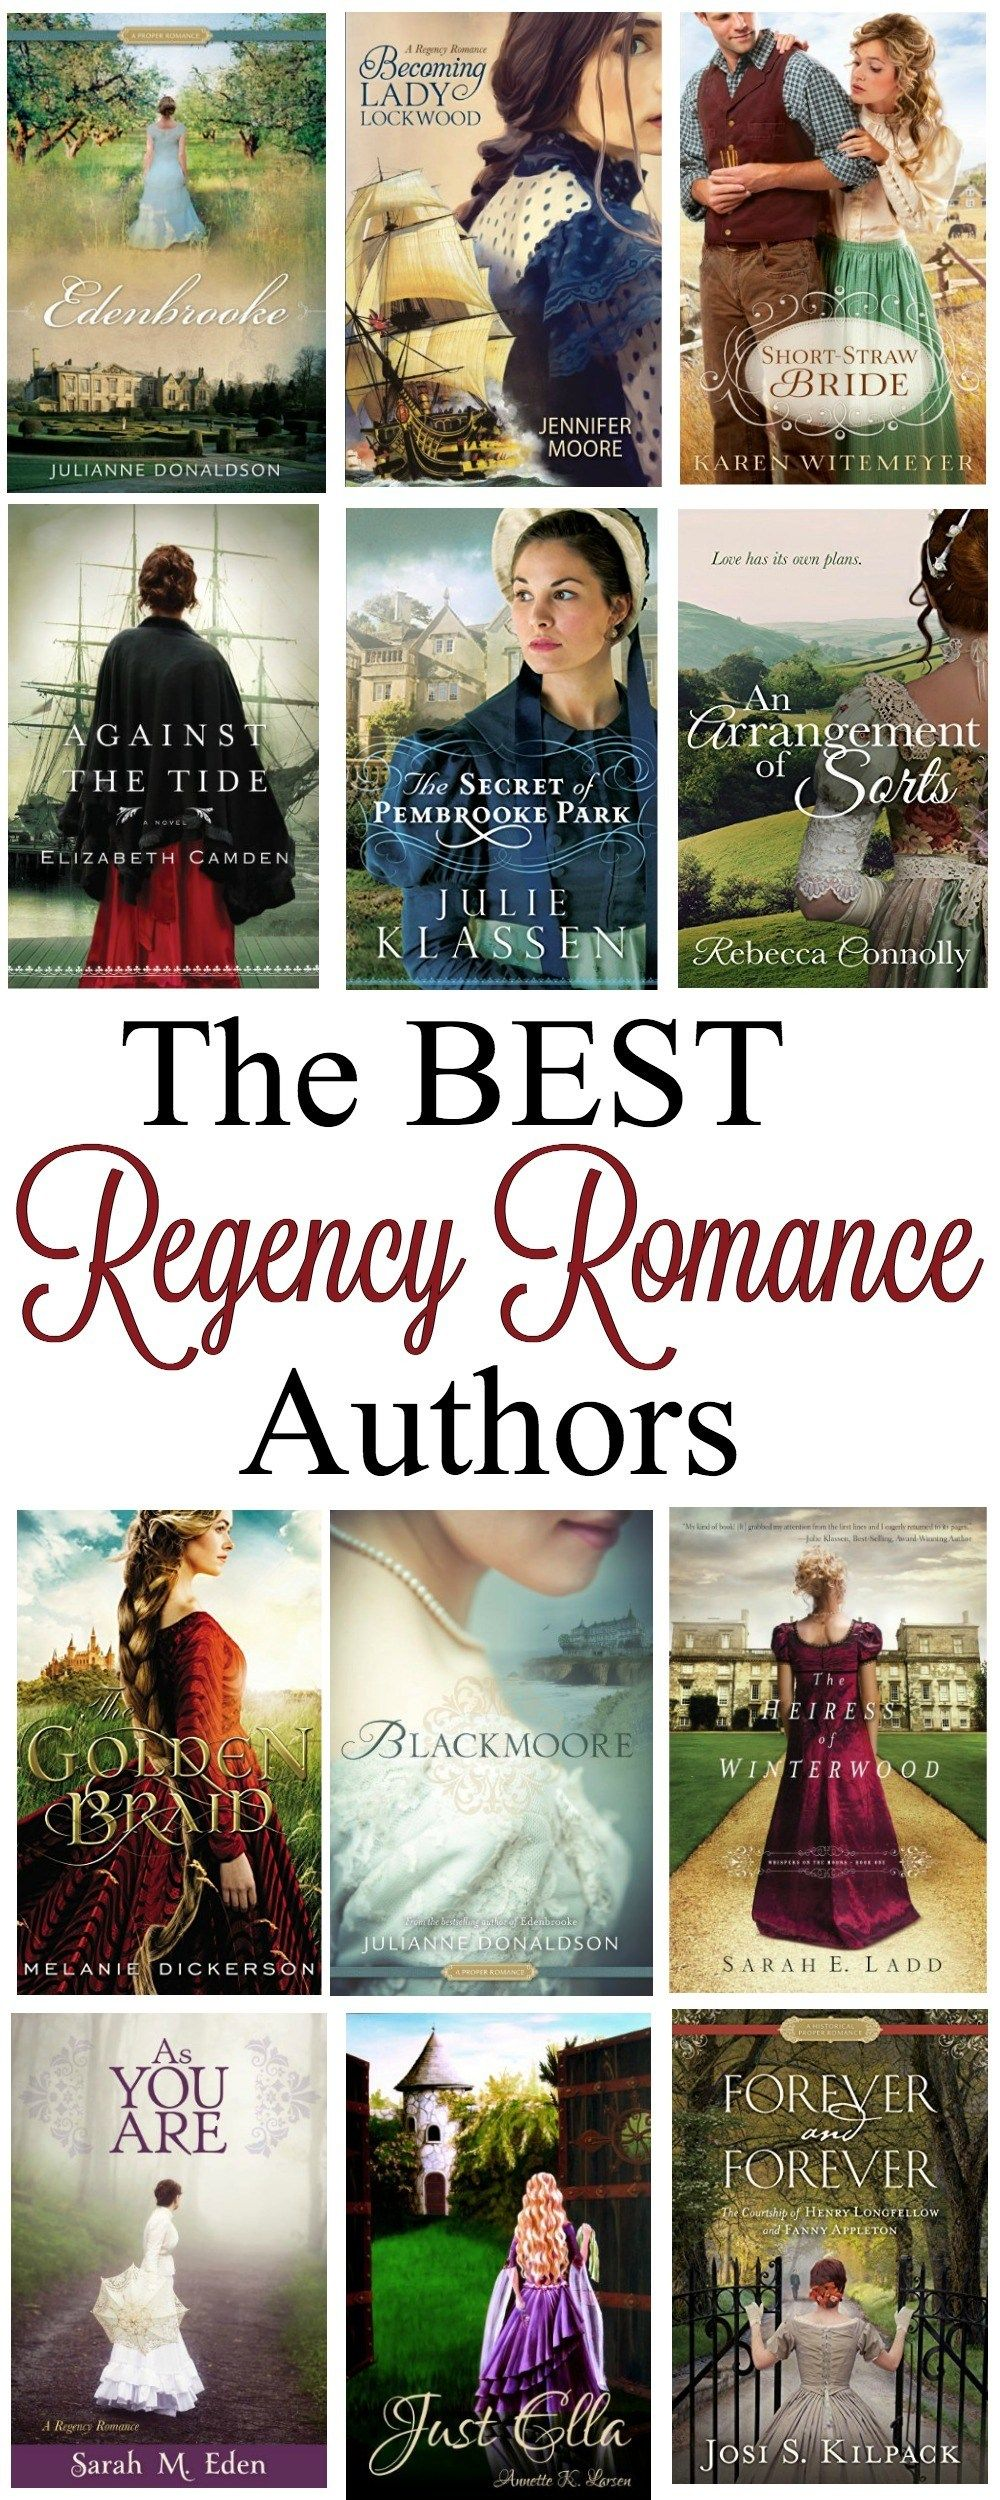 If You Love To Read Historical Fiction Look No Further Than This Top Regency Romance Authors